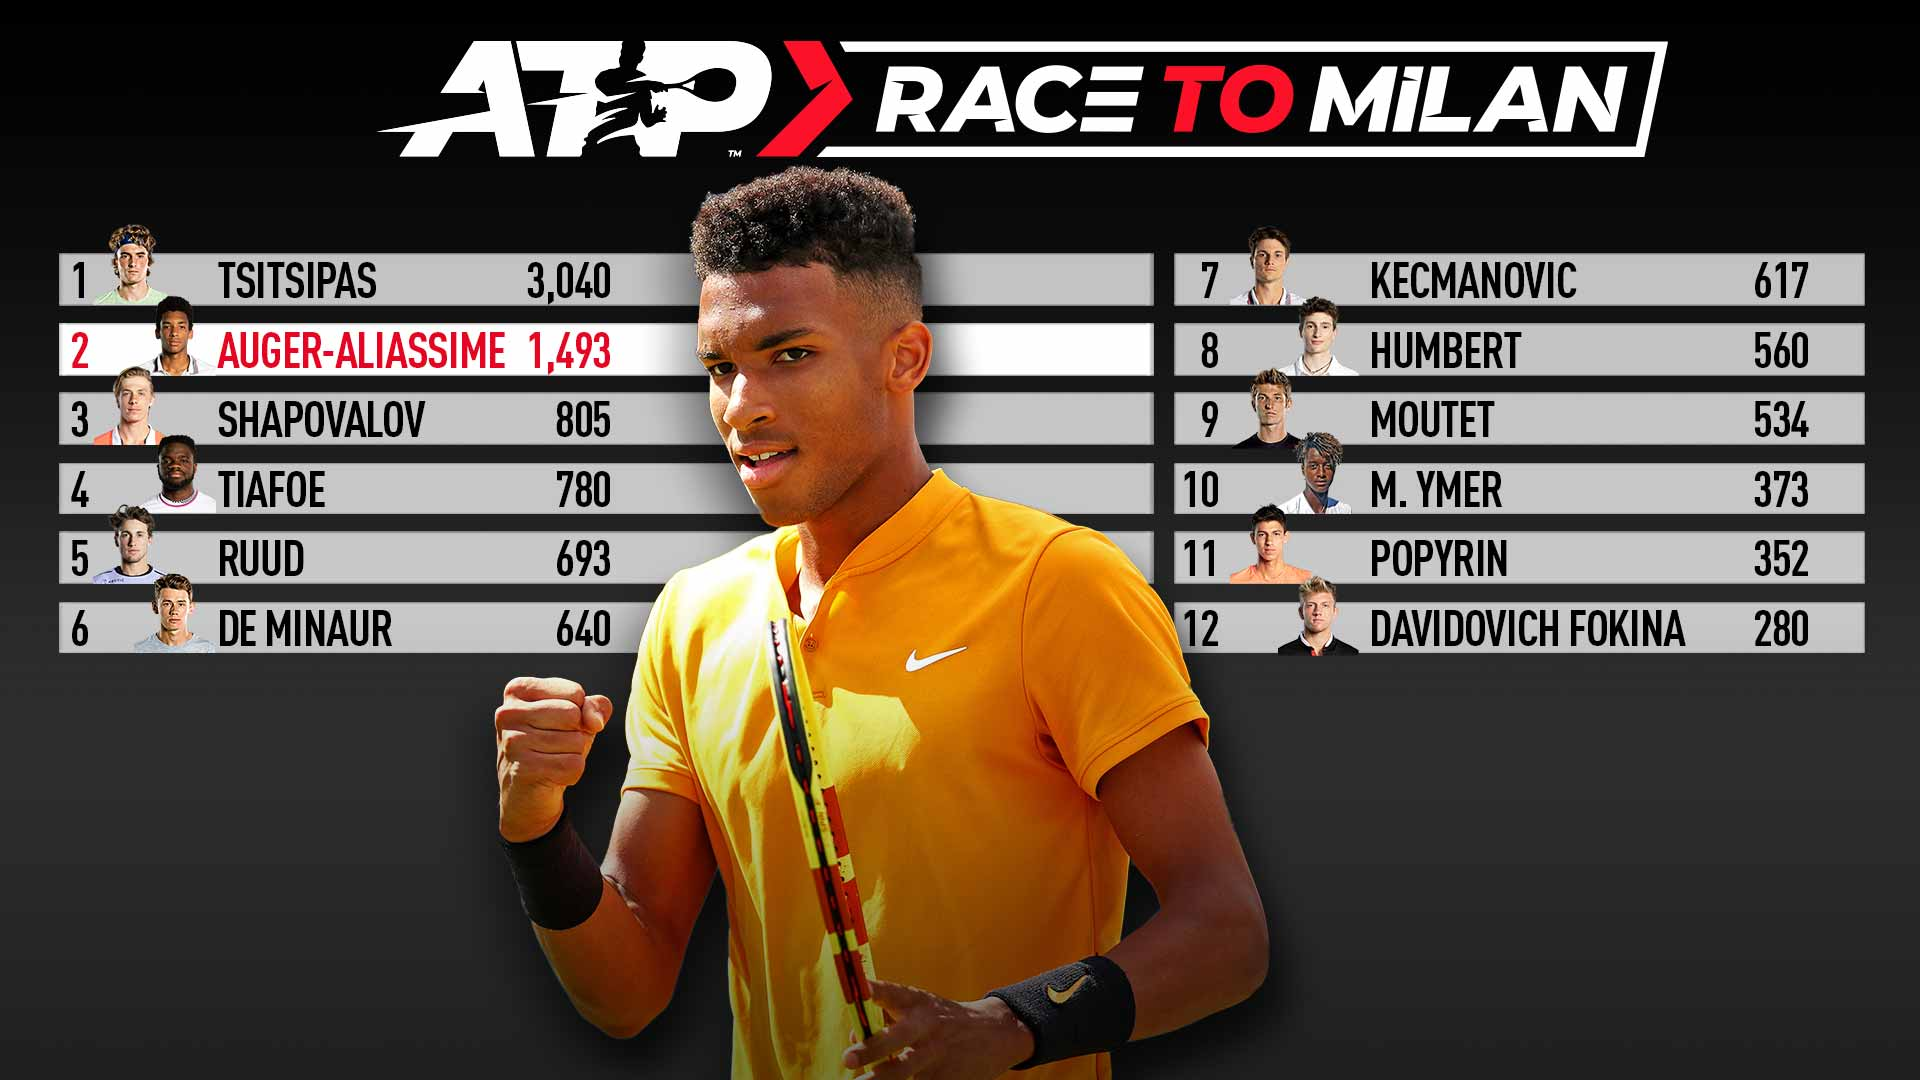 Felix Auger-Aliassime is in second place in the ATP Race To Milan